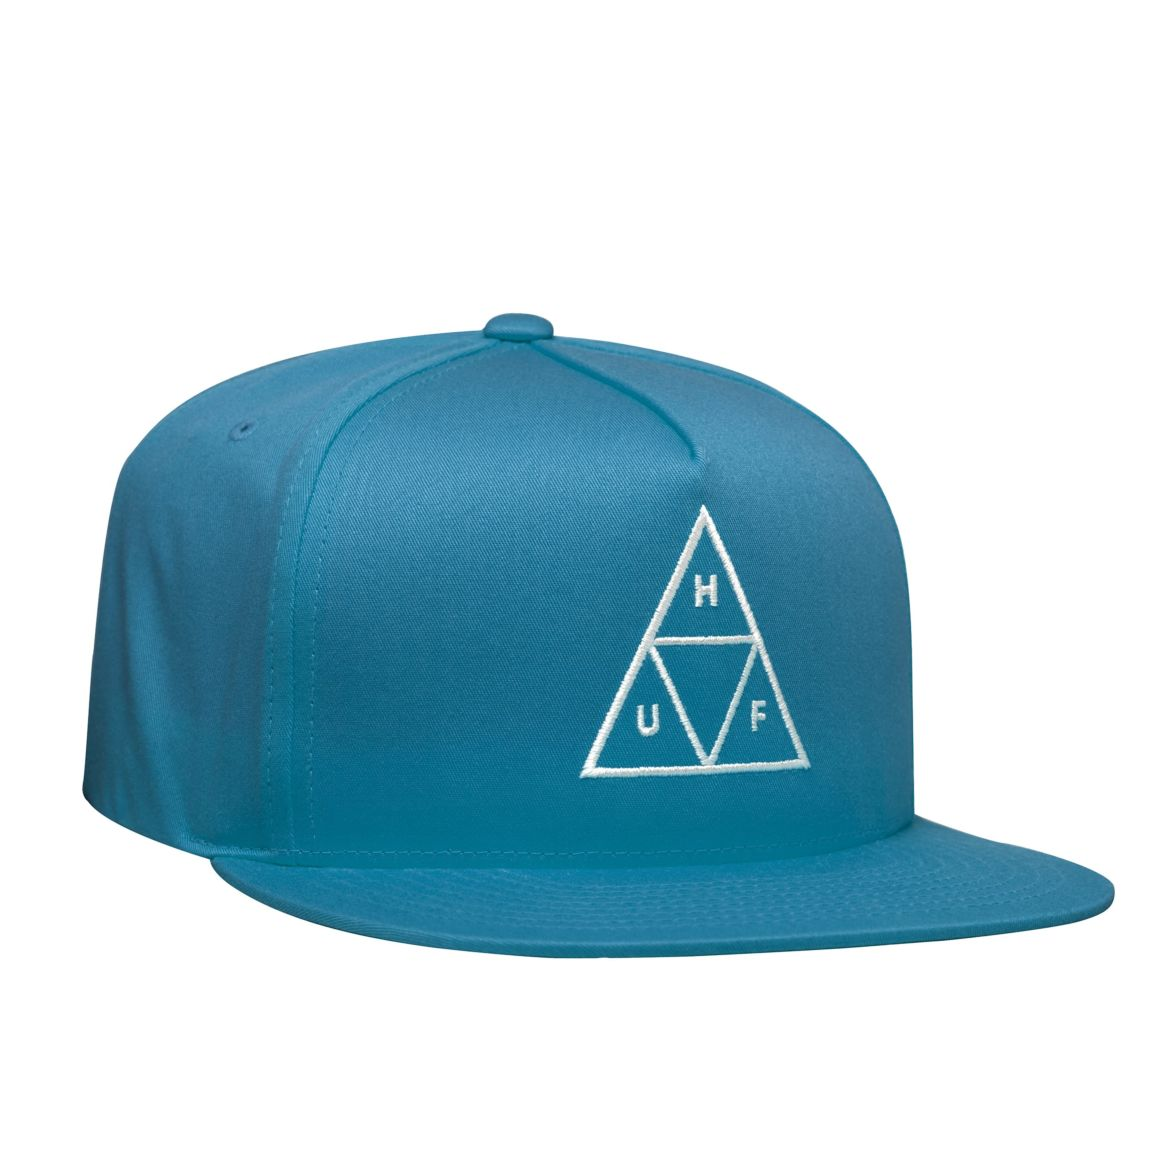 6ad3a856c HUF Triple Triangle Snapback Hat Biscay Bay